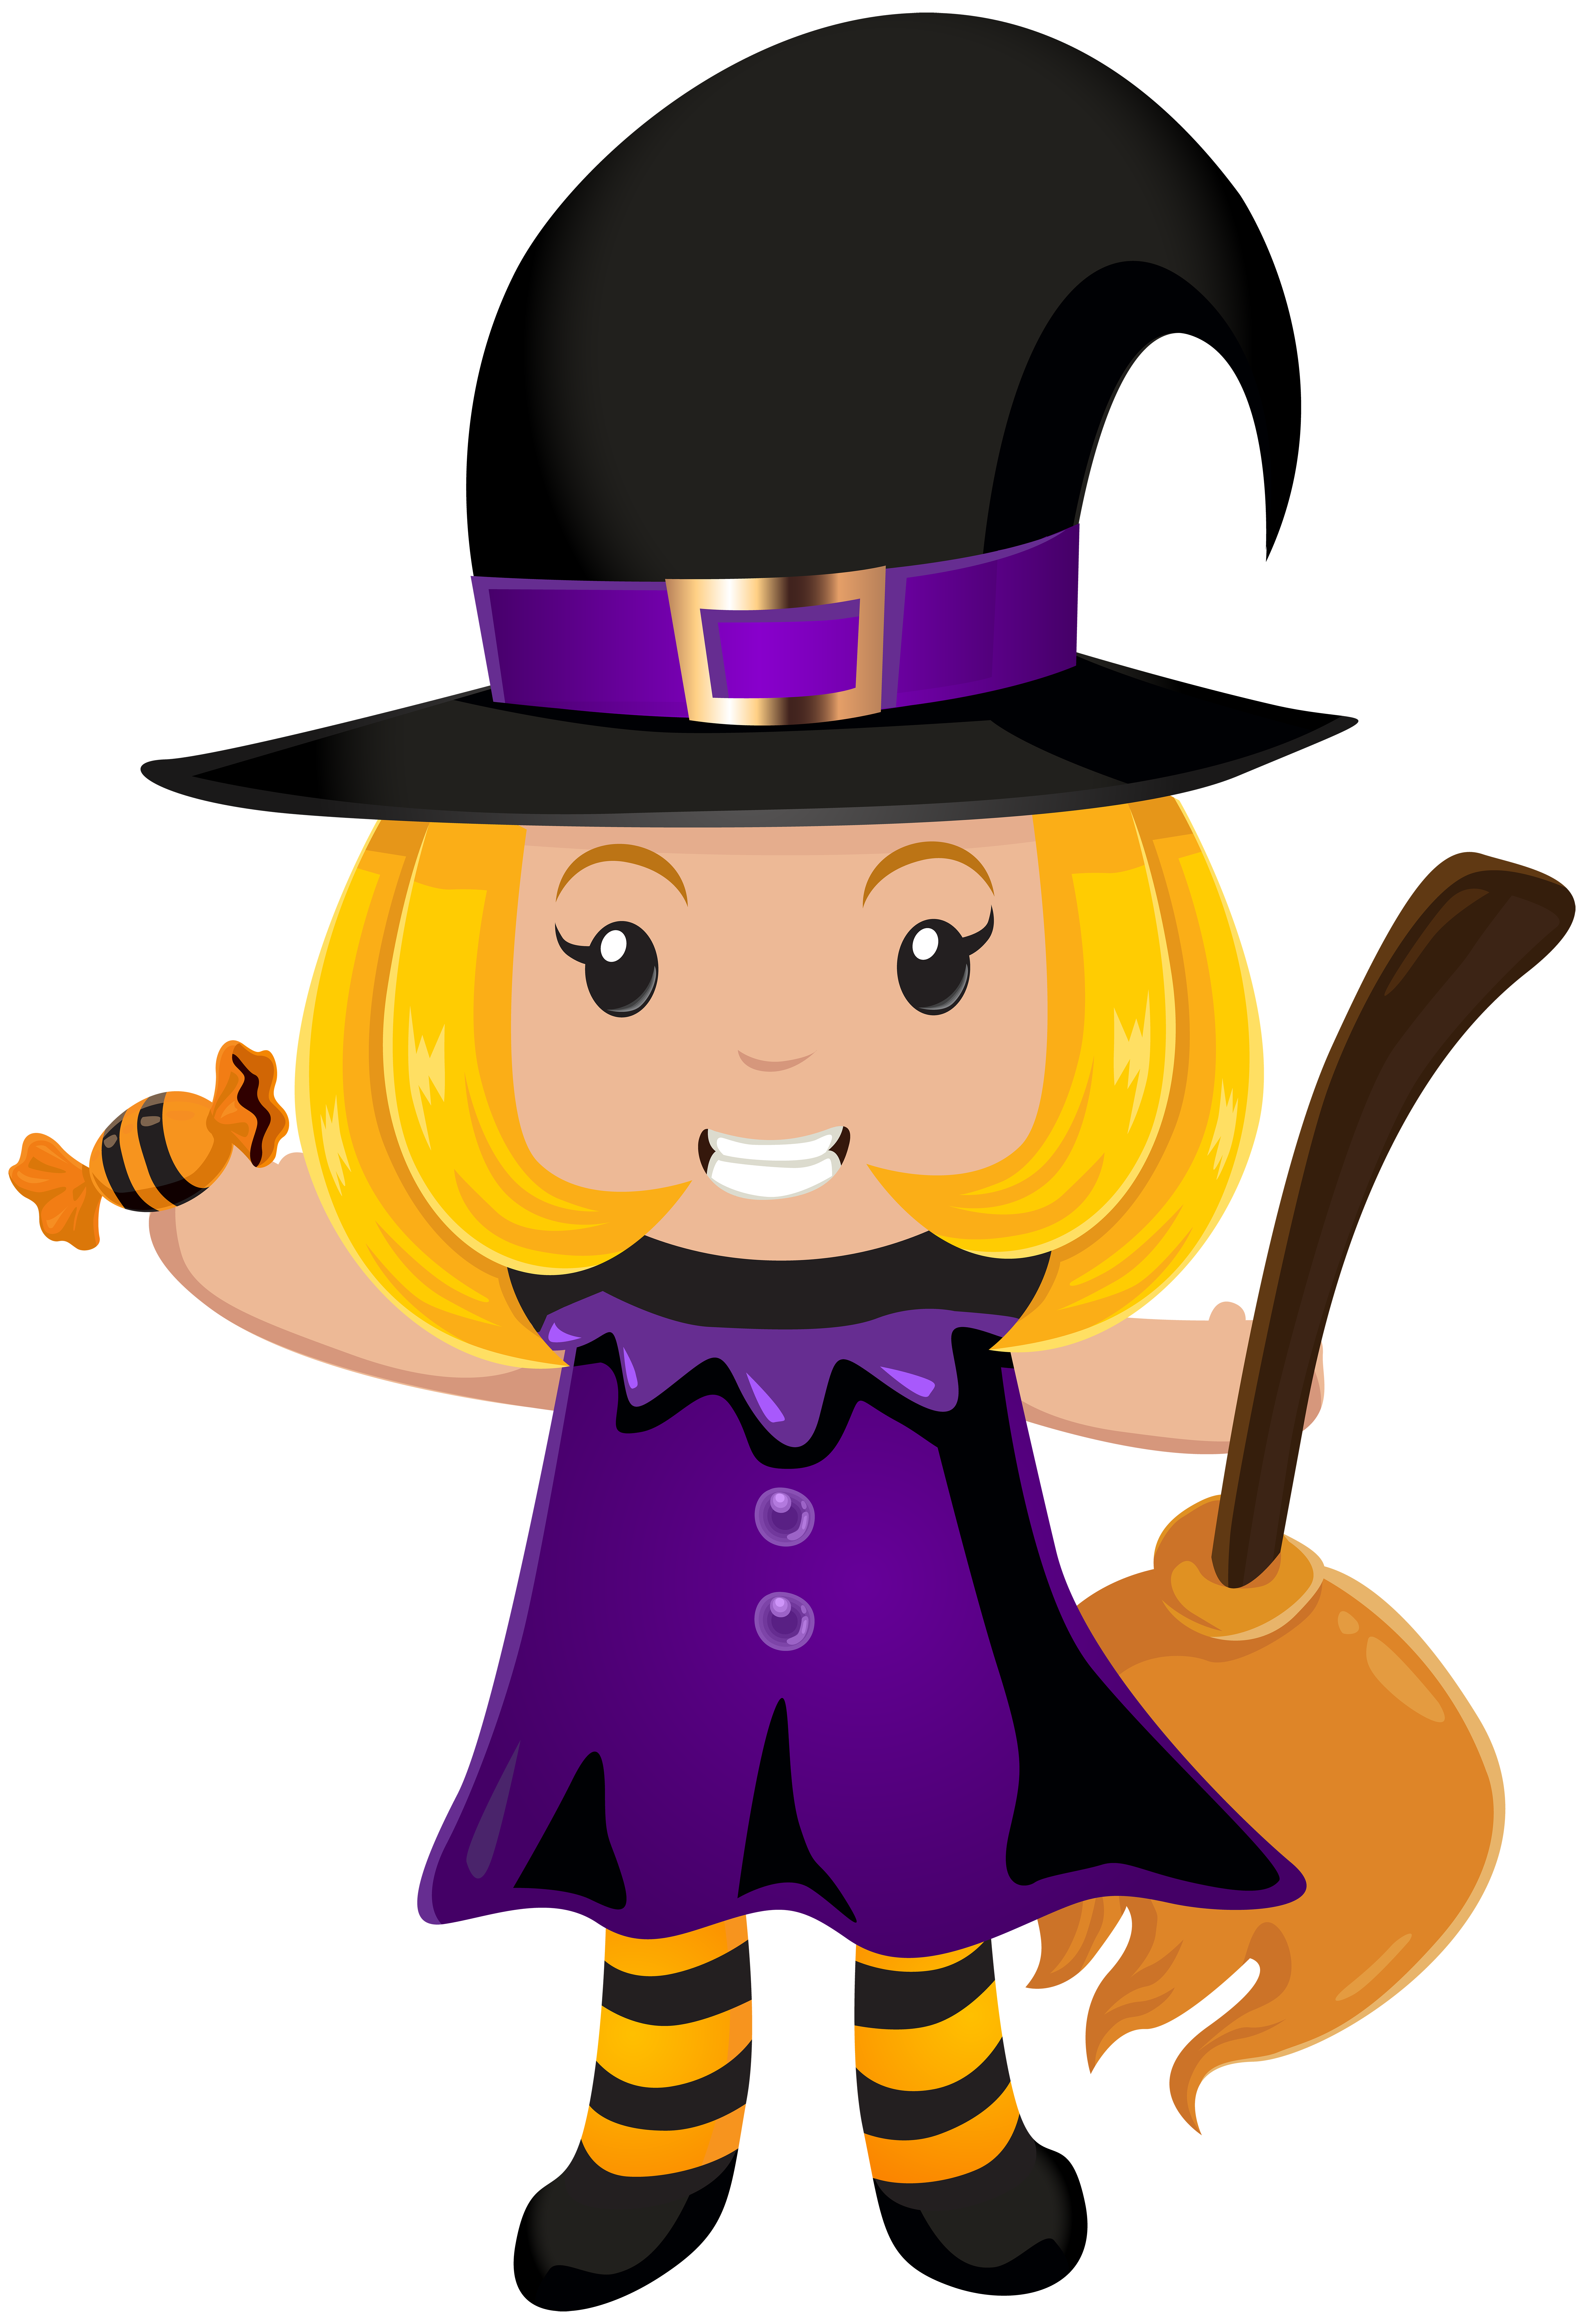 Clipart halloween costumes clipart images gallery for free download.